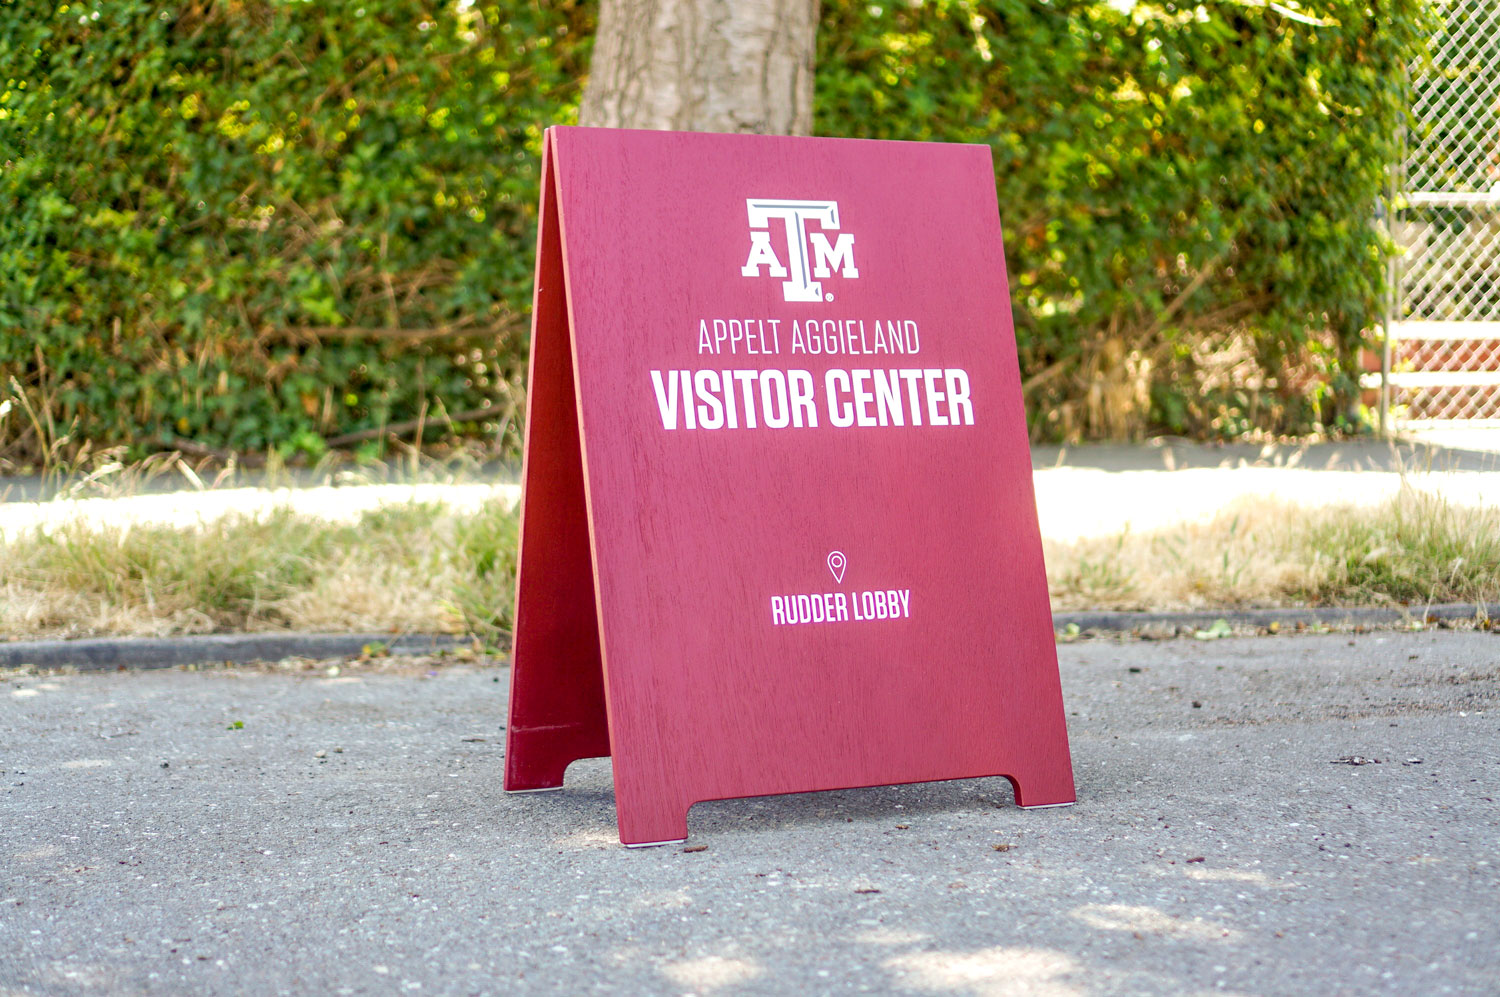 Red A-frame sign with white text for the visitor center at Texas A&M, a public research university in College Station, Texas.